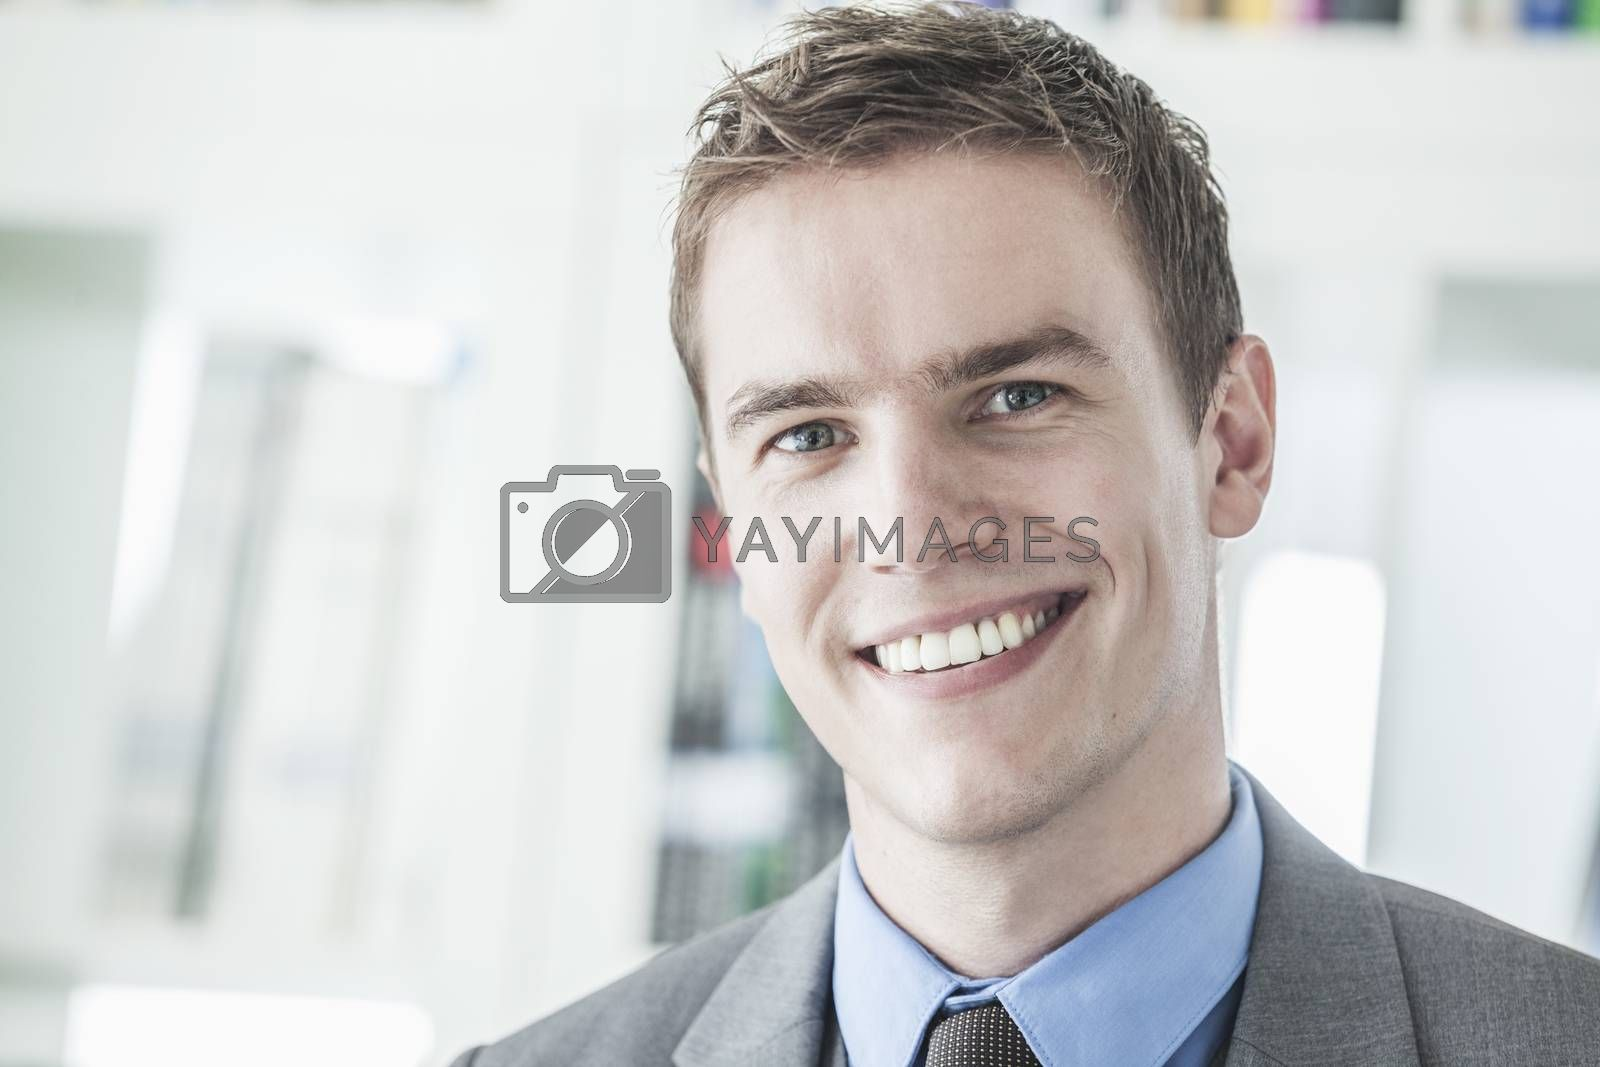 Portrait of young smiling businessman looking at camera, head and shoulders